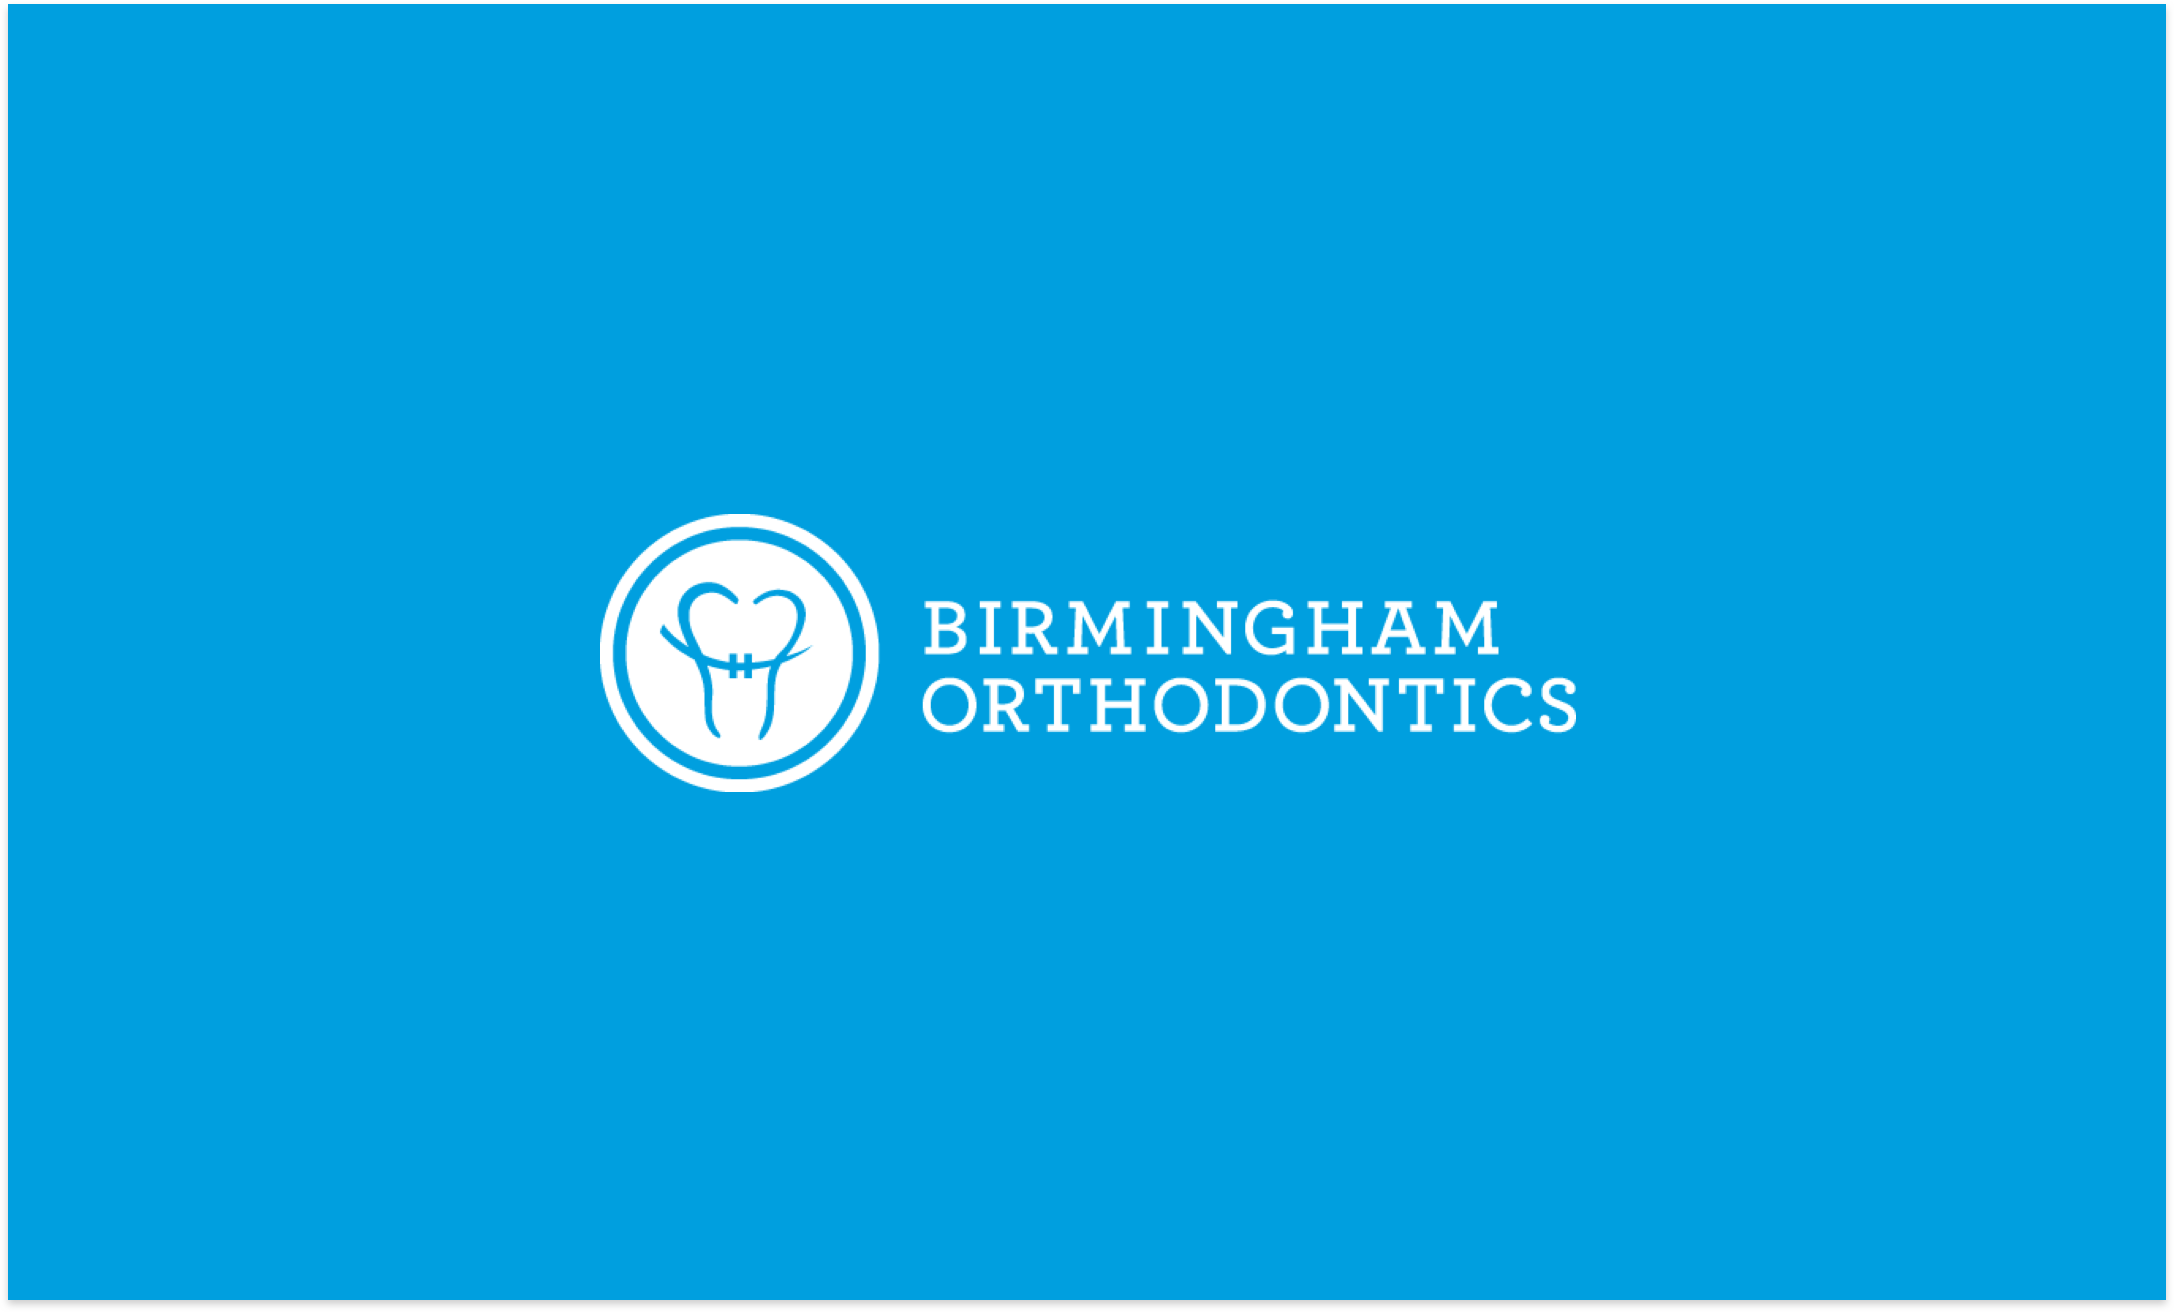 Birmingham Orthodontics goes Miley Cyrus for your smile